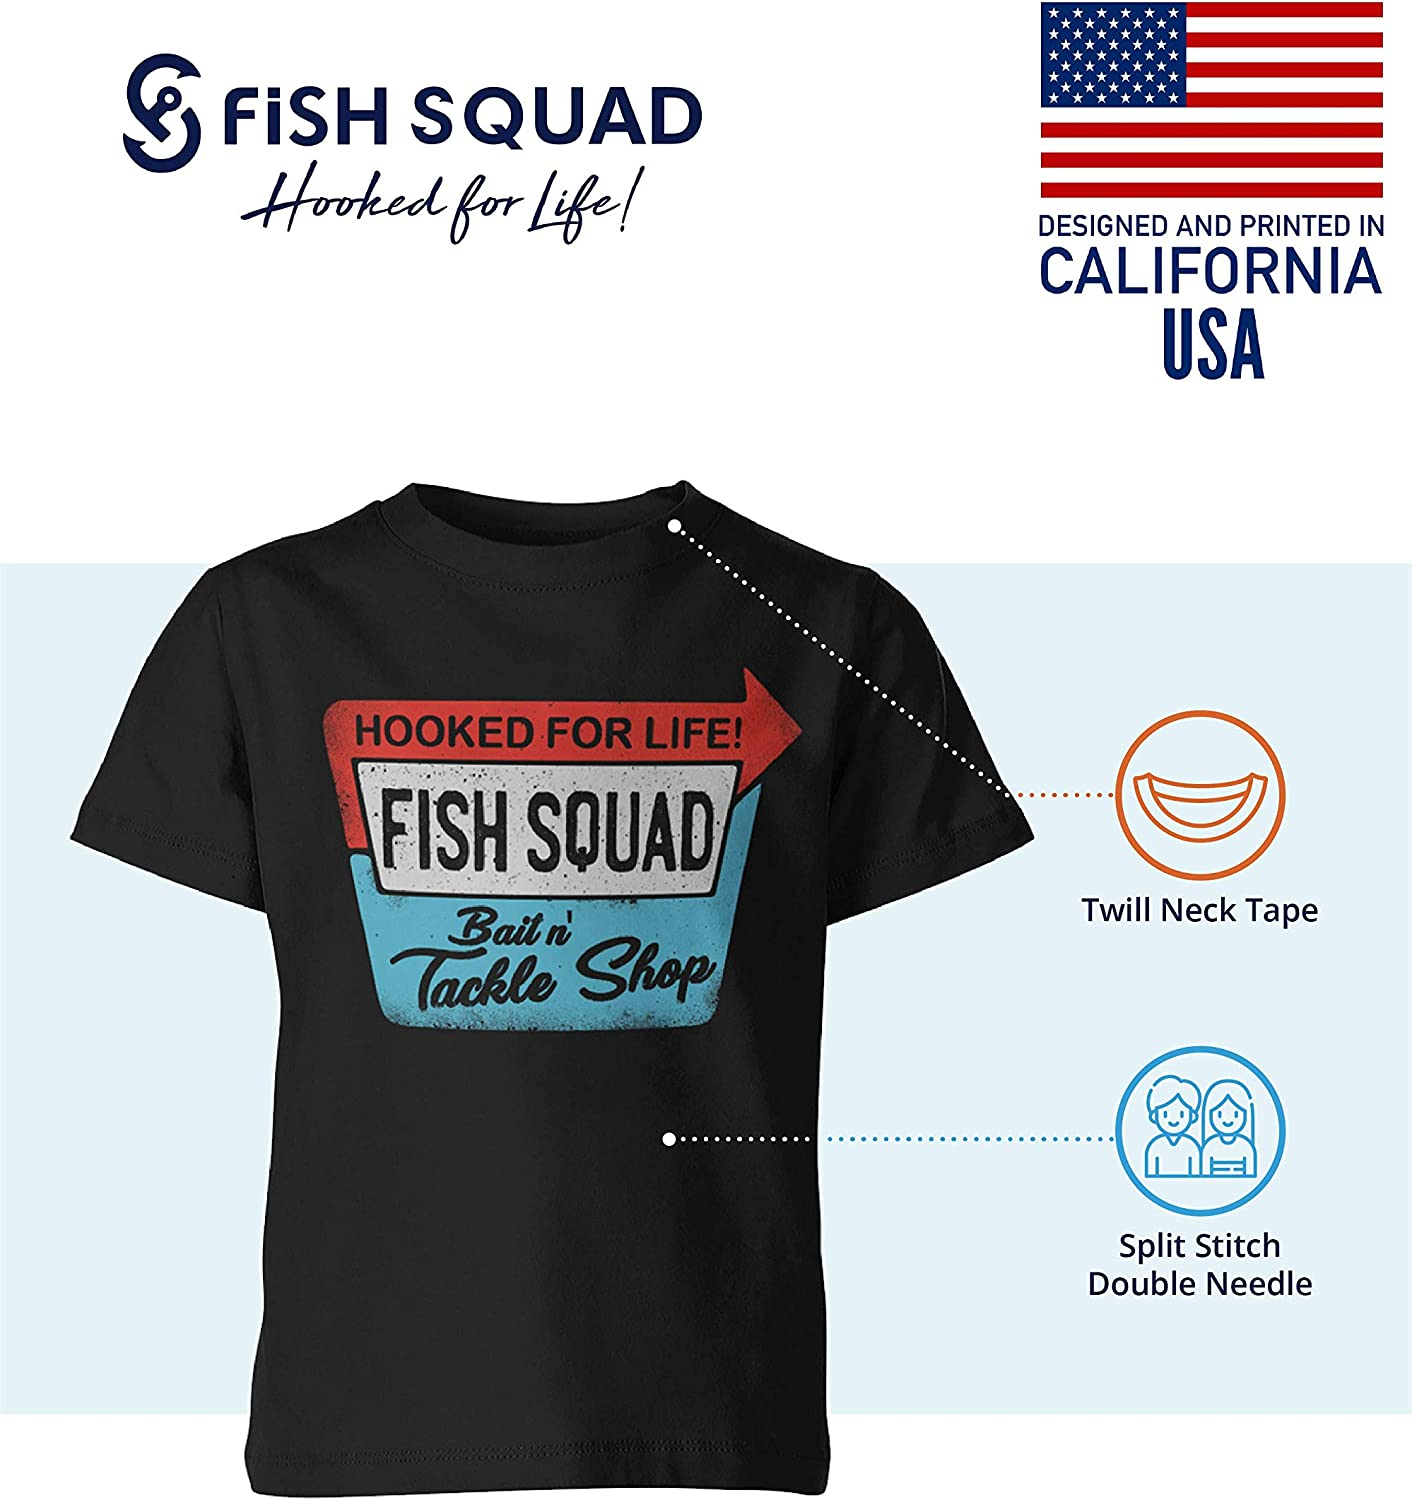 Fish Squad Graphic Tees for Kids - Youth Short Sleeve Fishing Tee Shirts for Boys & Girls - Unisex - Durable Print Design